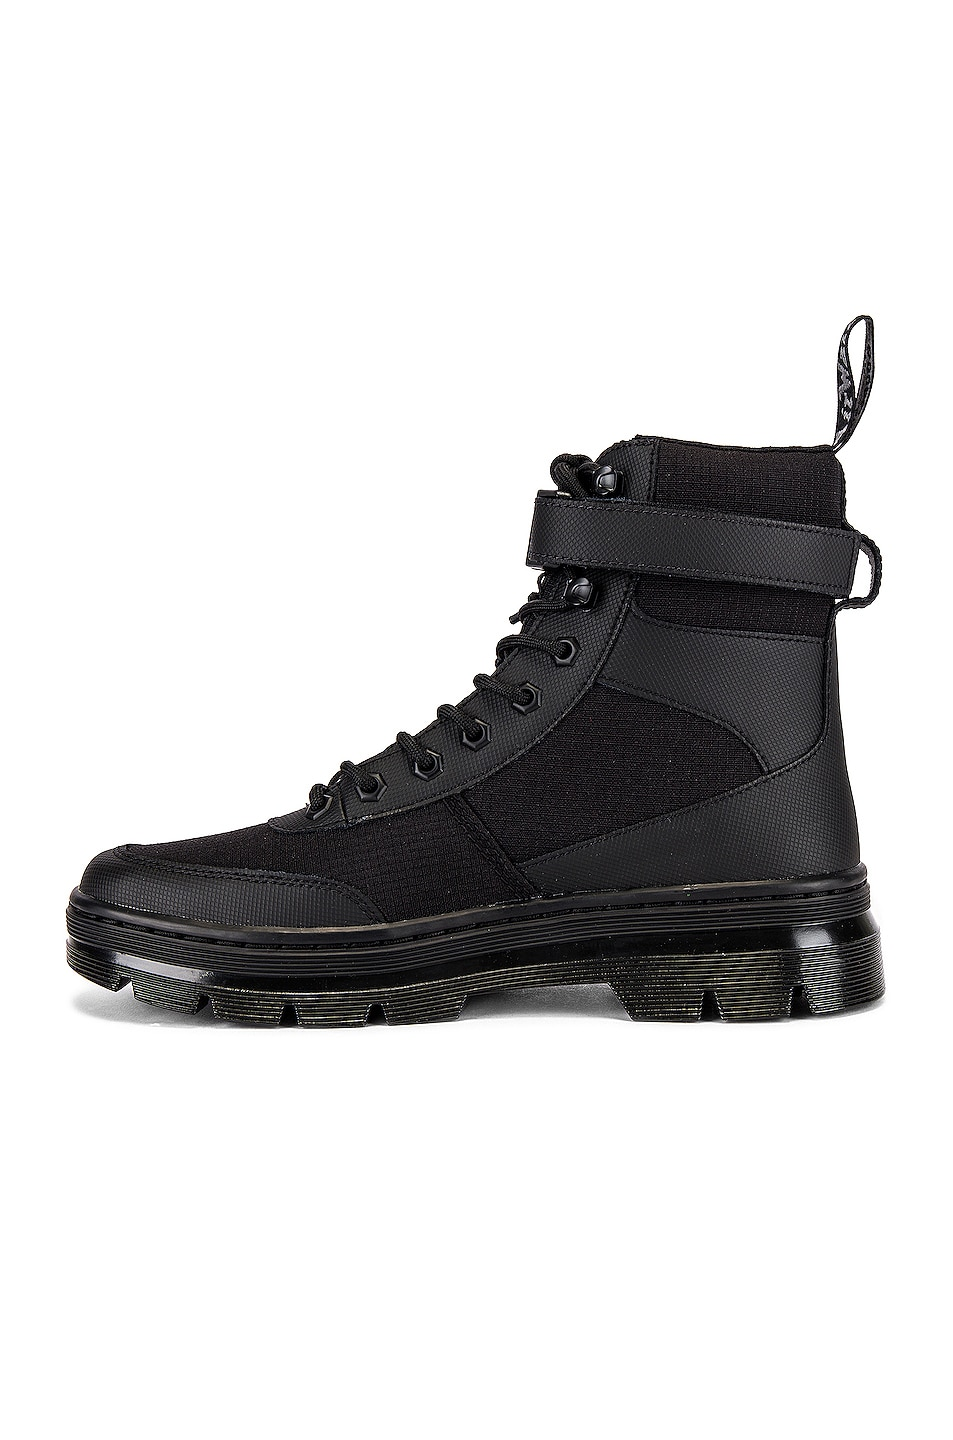 Image 5 of Dr. Martens Combs Tech Sneaker in Black